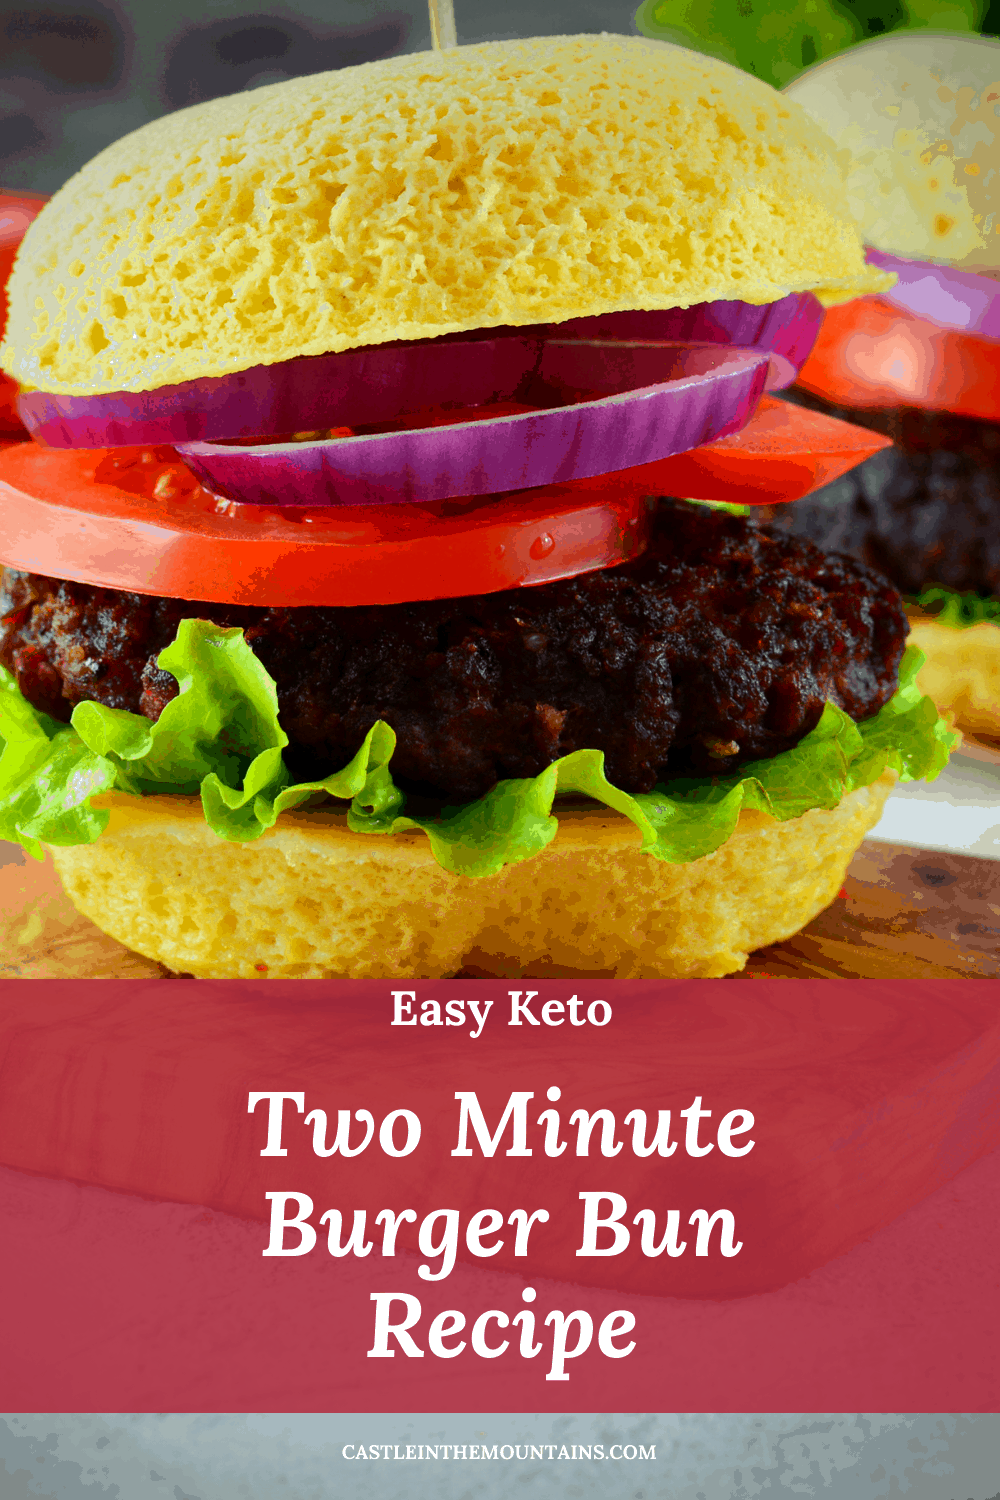 Two Minute Burger Bun - How to make the easiest Keto Bun